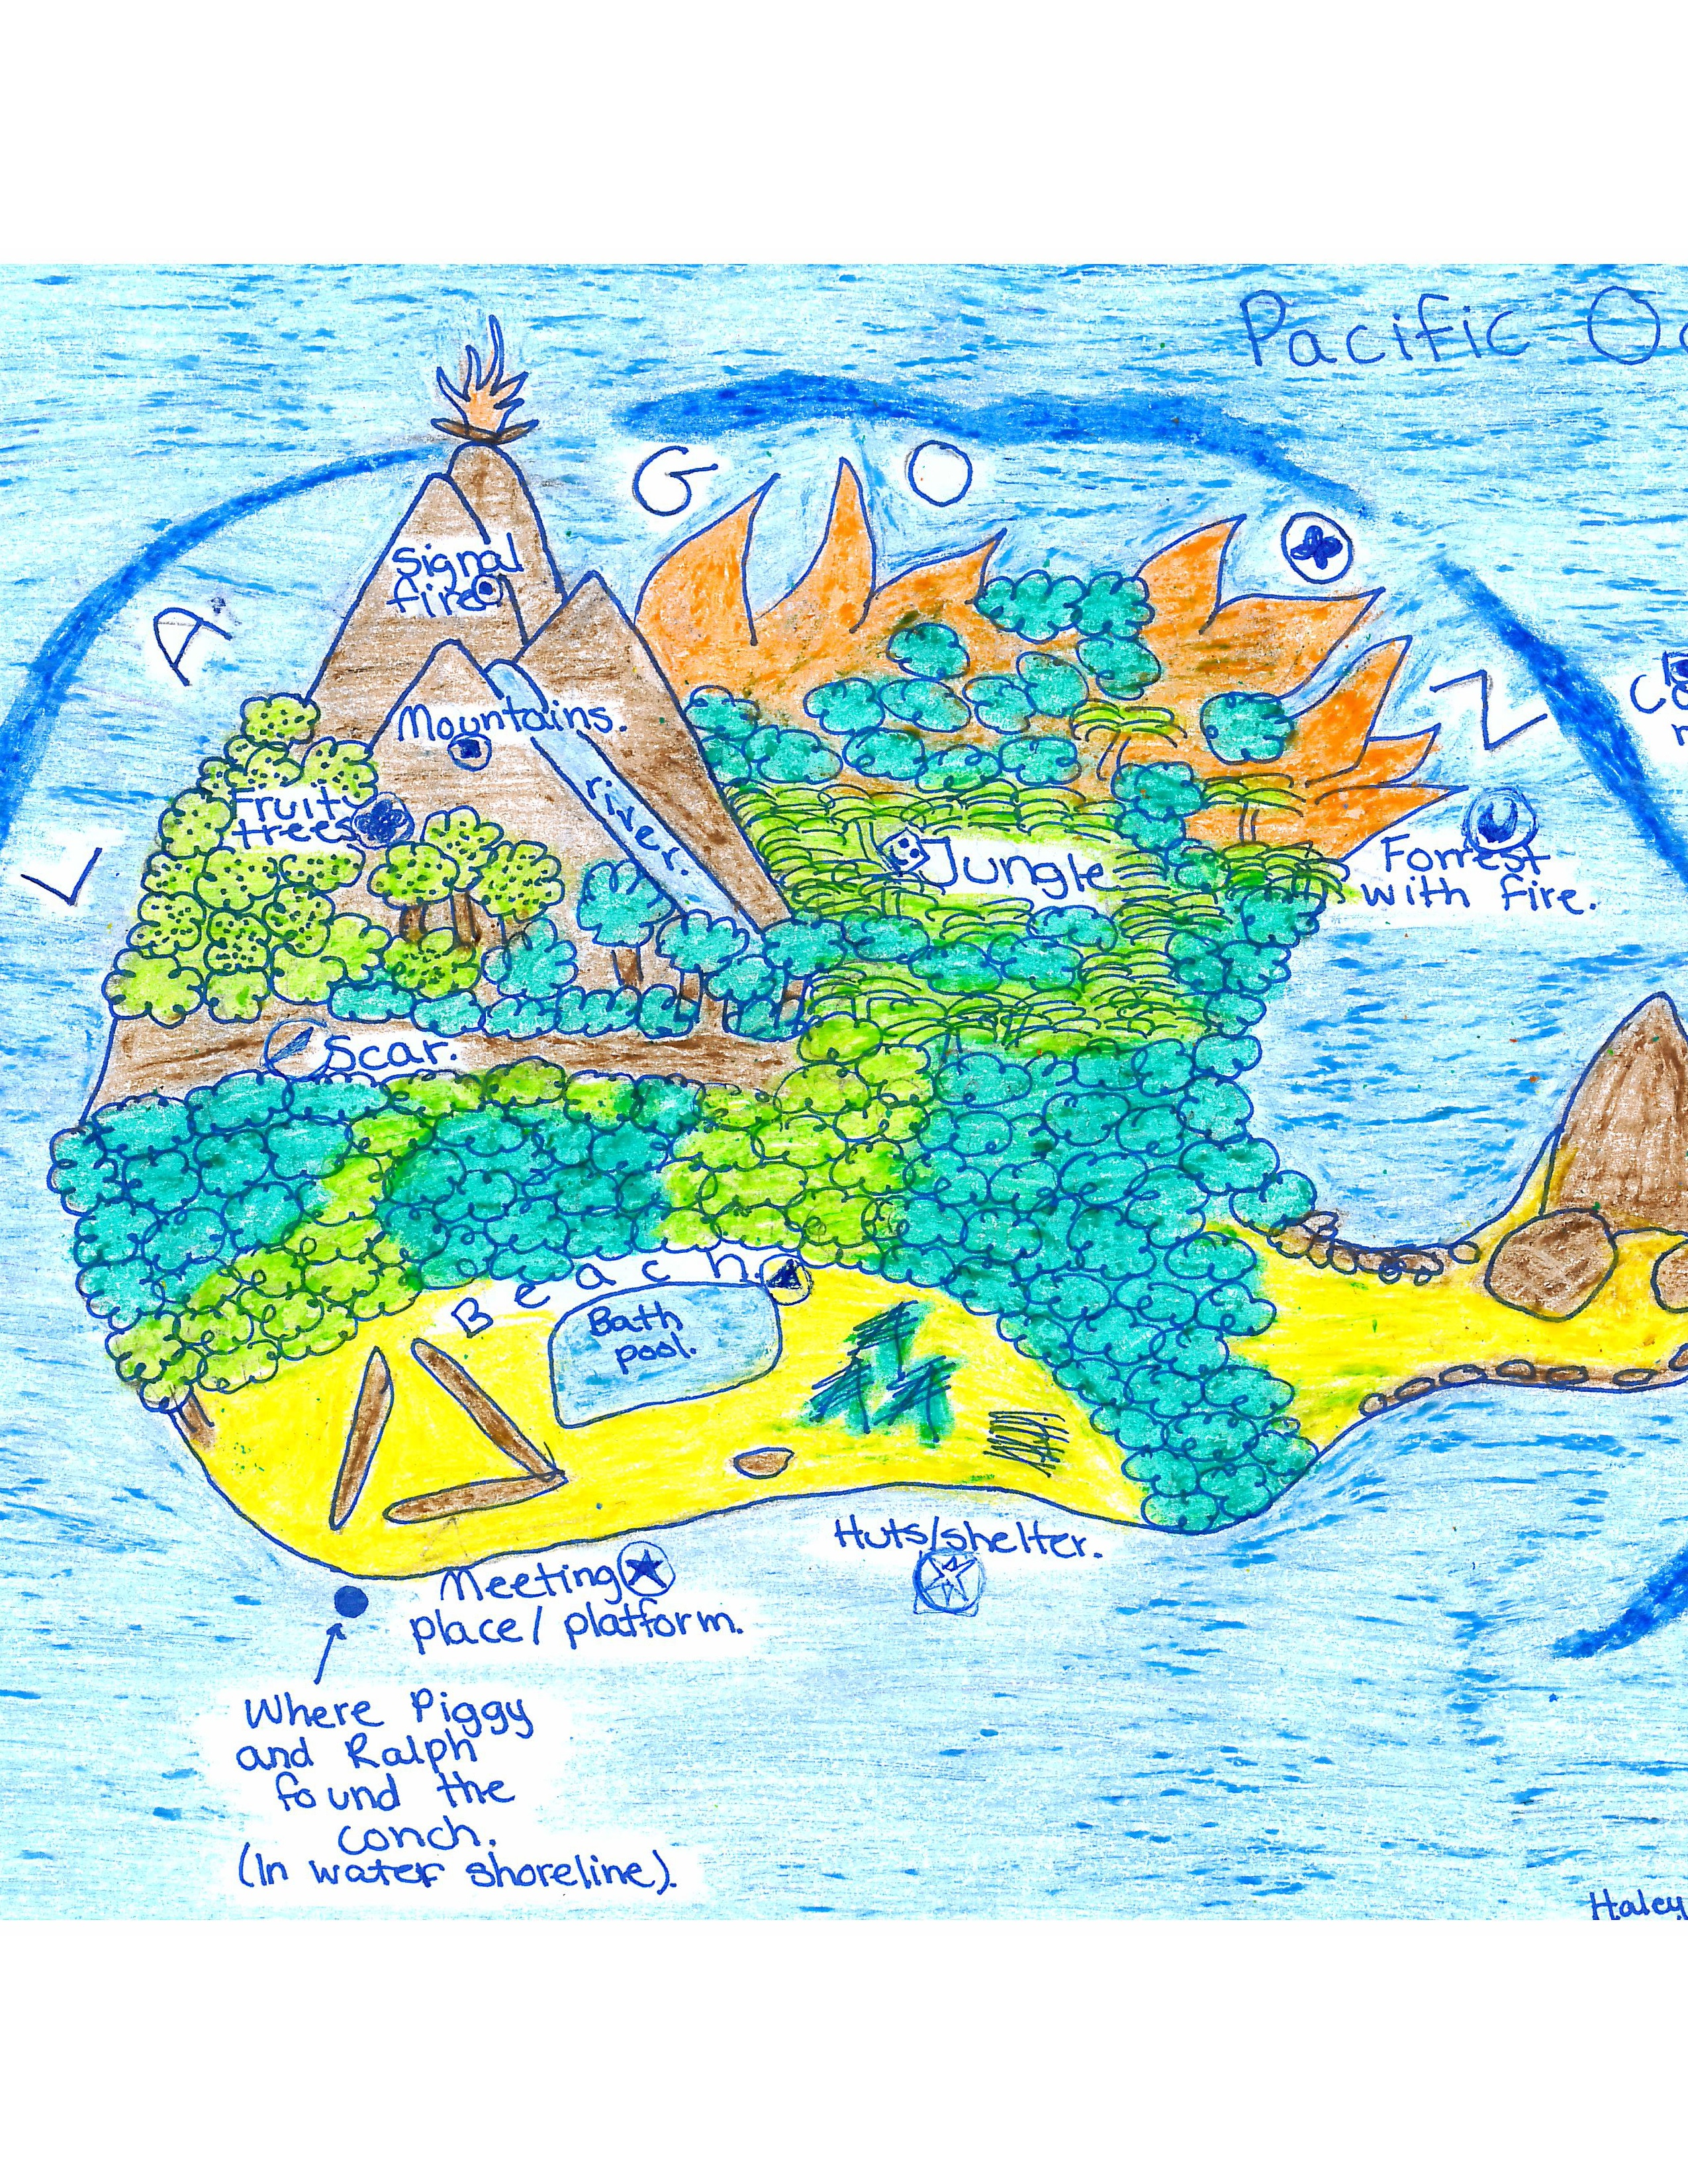 Lord Of The Flies Map The Lord Of the Flies Island Map. Lord Of The Flies Map